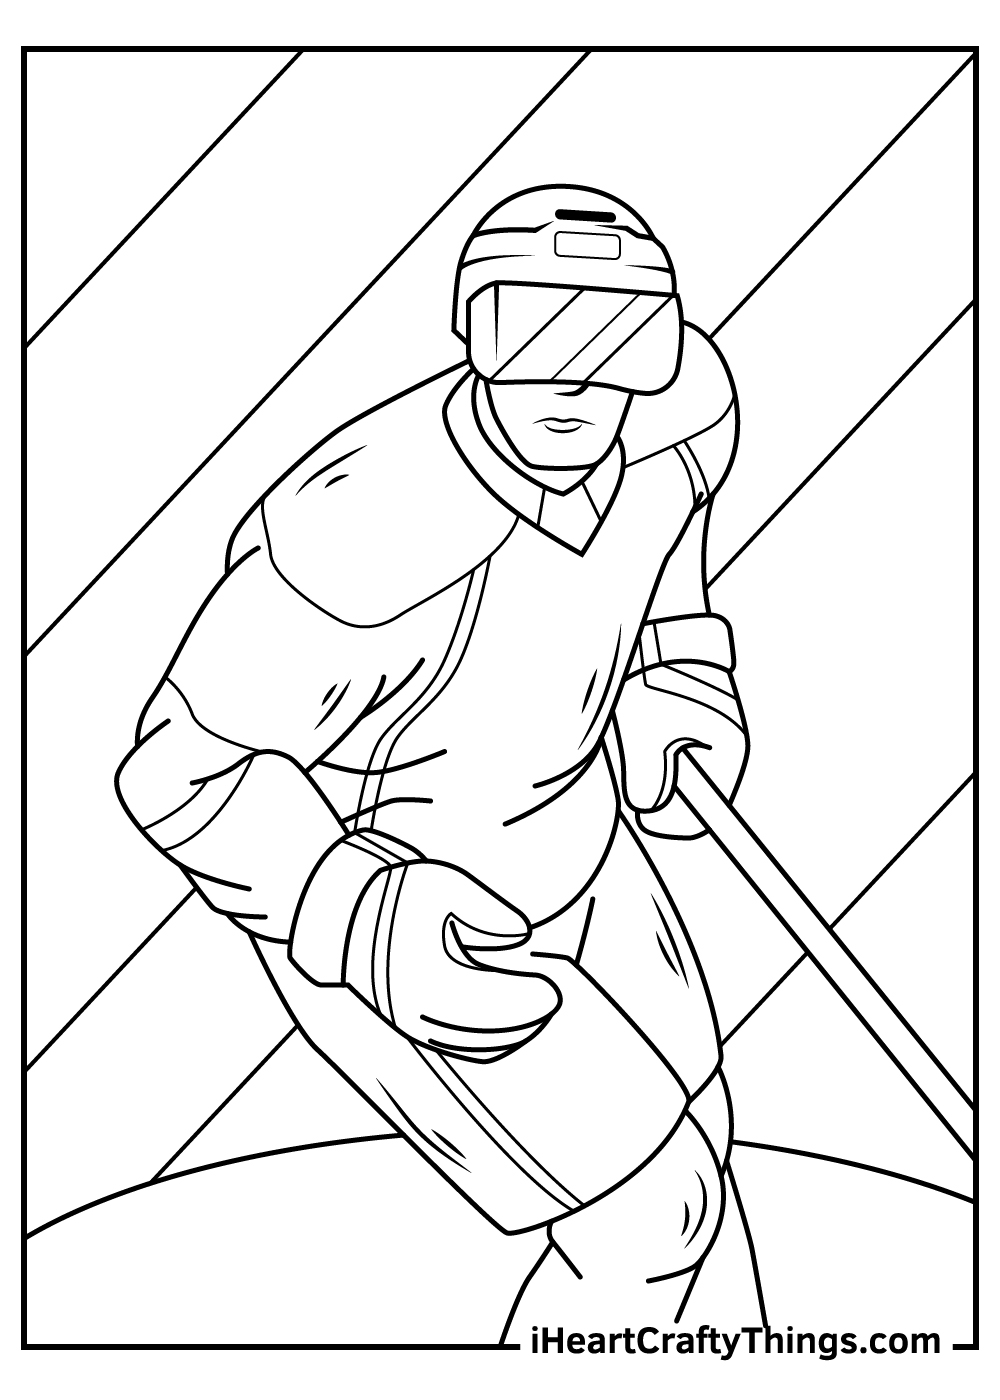 free nhl coloring pages download